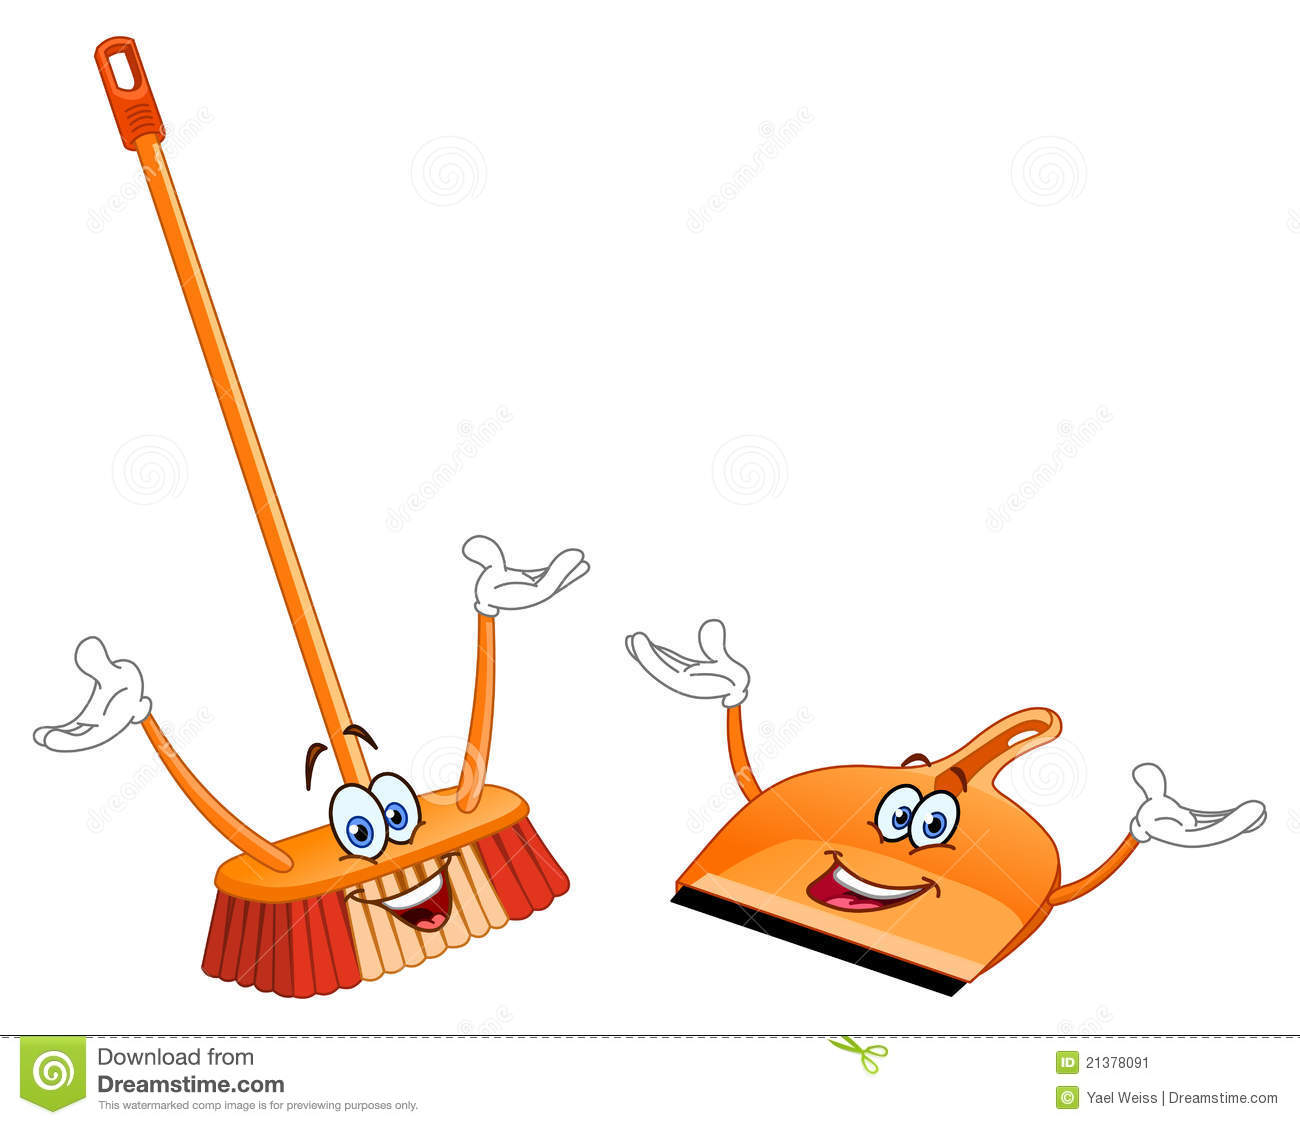 Broom And Dustpan Cartoon Stock Image - Image: 21378091